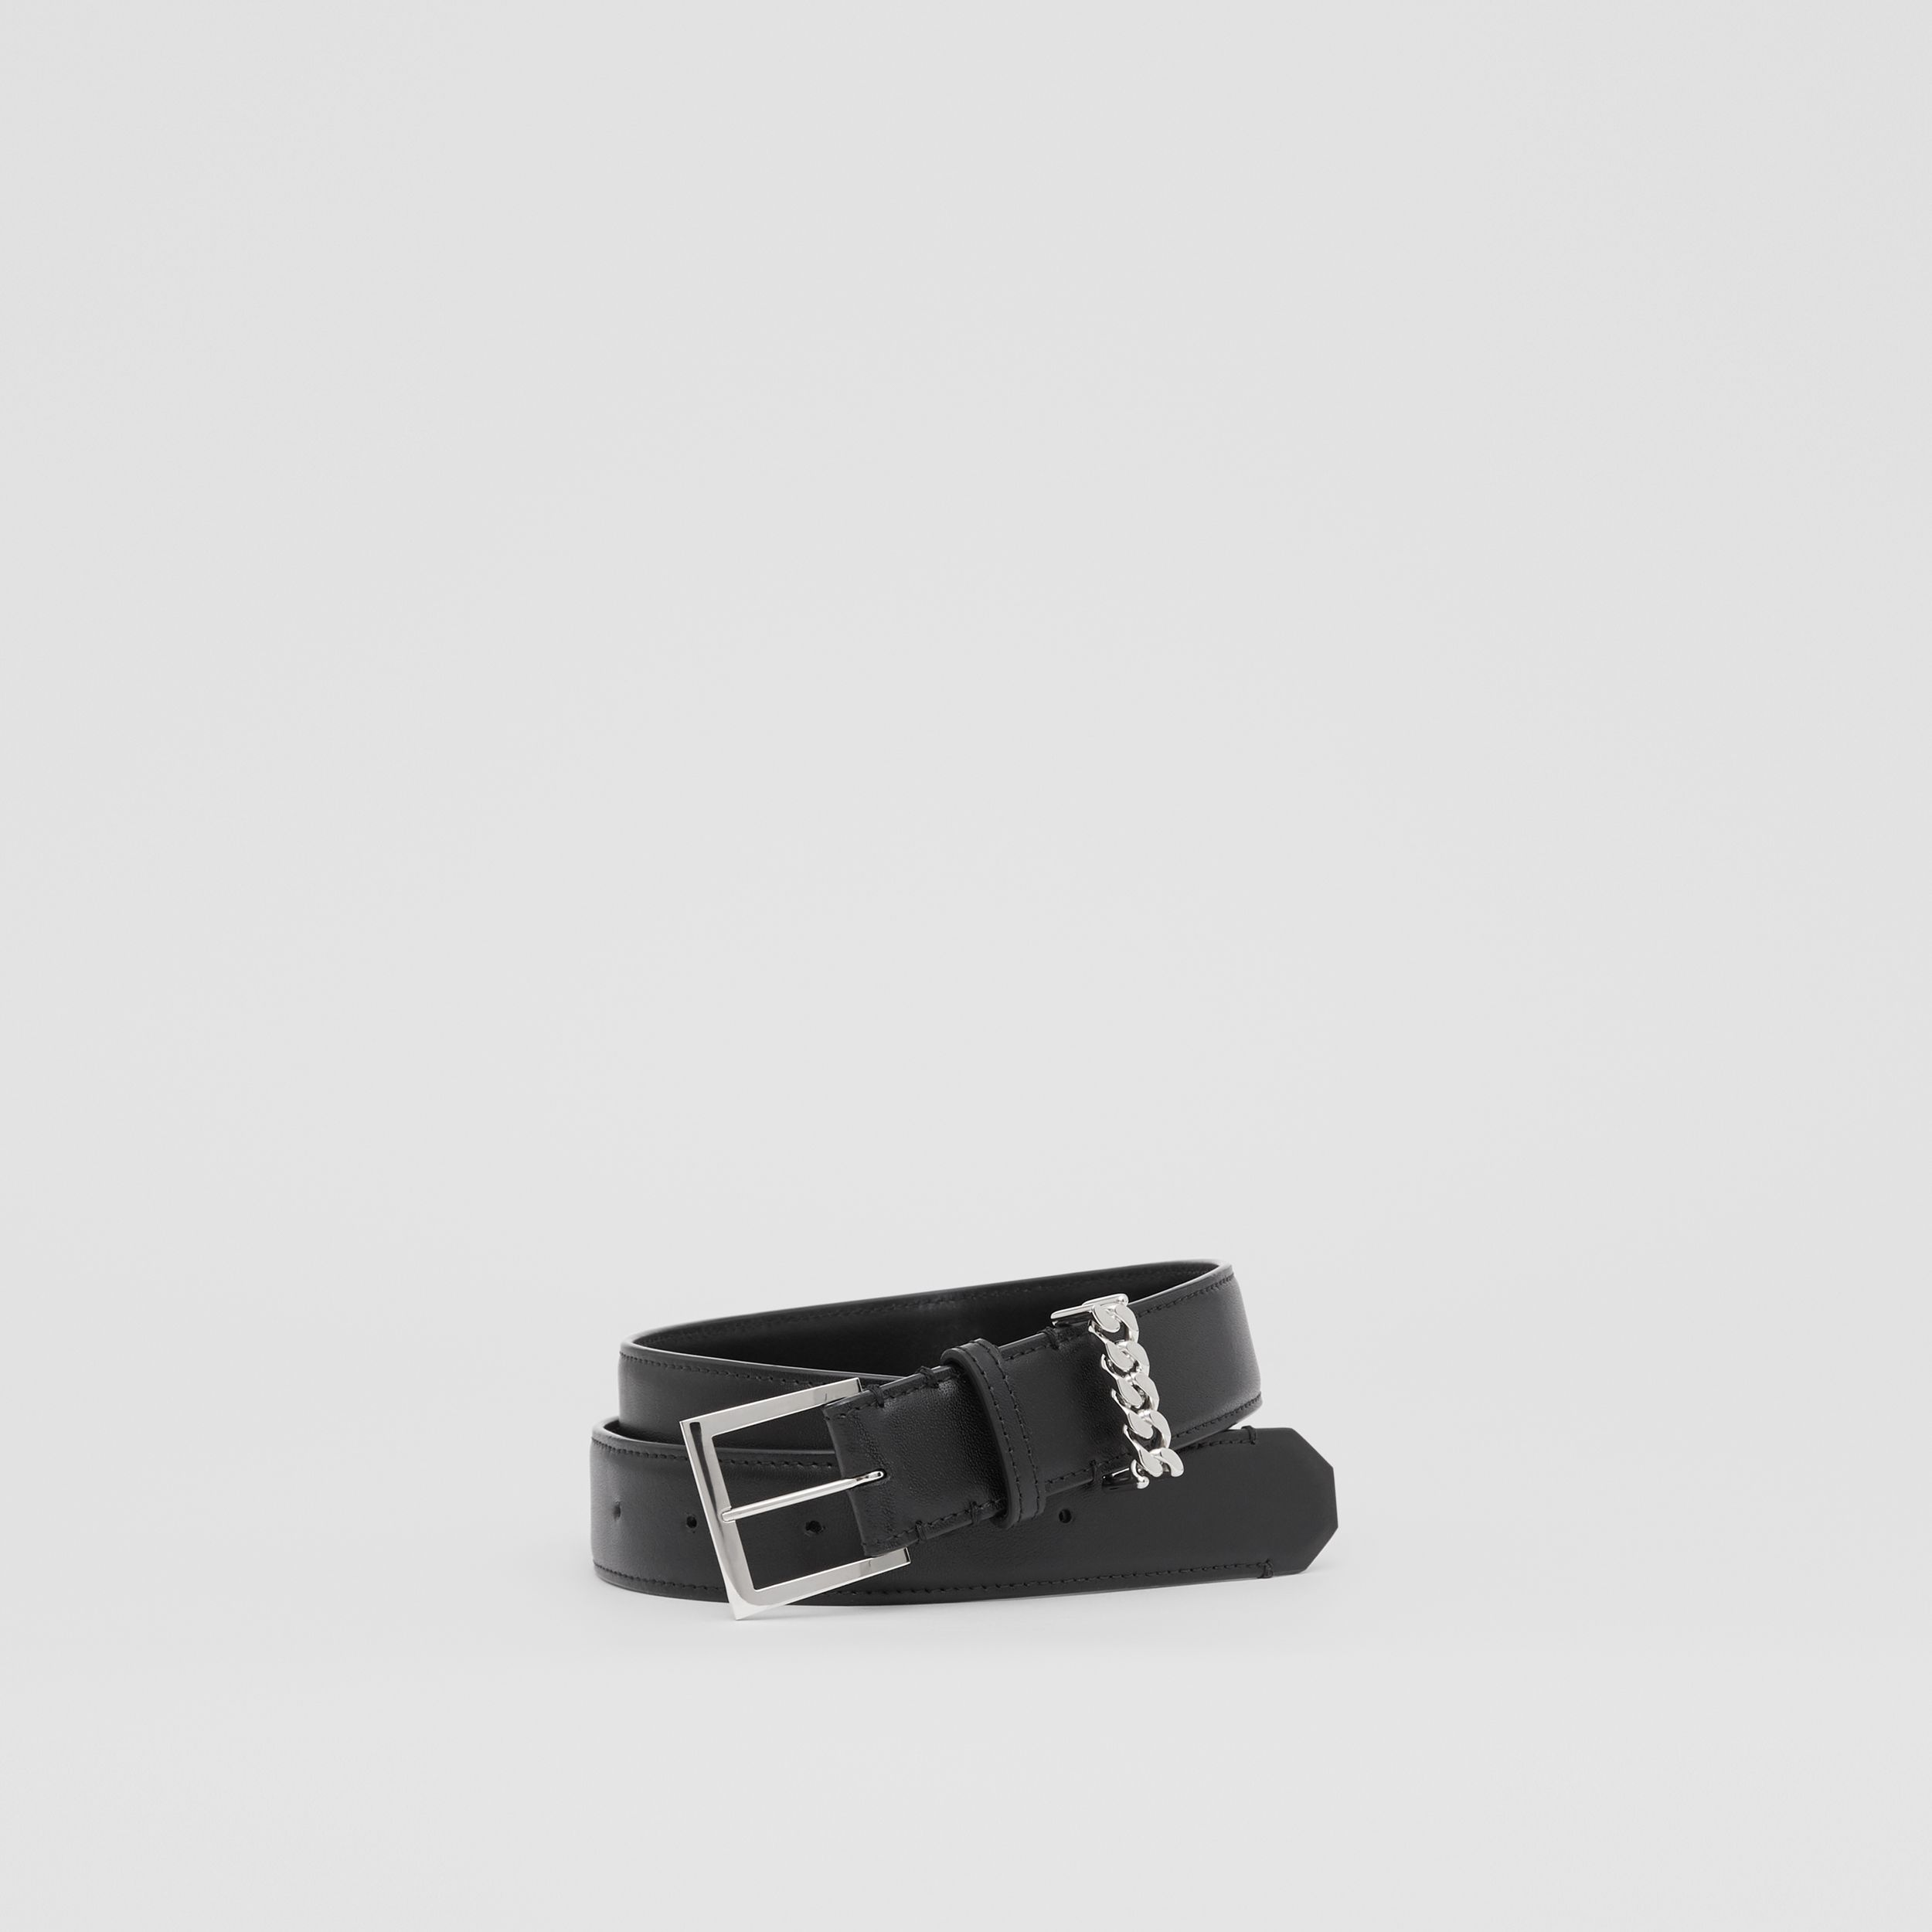 Chain Detail Leather Belt in Black/palladium | Burberry - 1